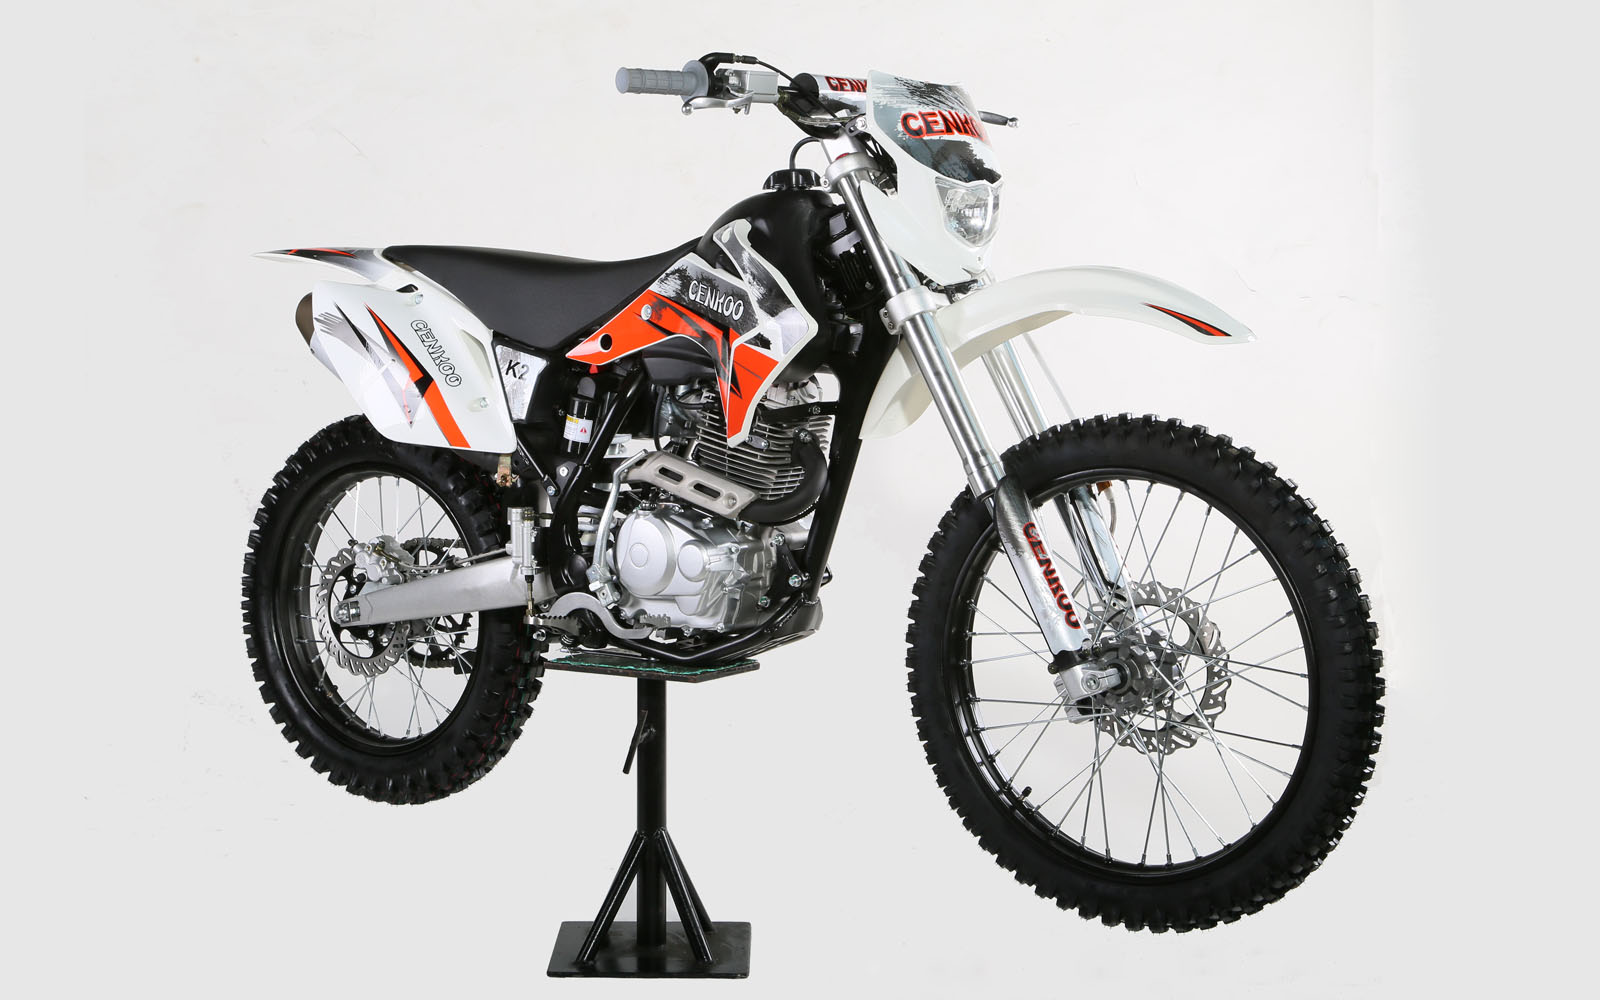 cenkoo k2 250cc luftk hlung 21 18 enduro motocross dirt. Black Bedroom Furniture Sets. Home Design Ideas